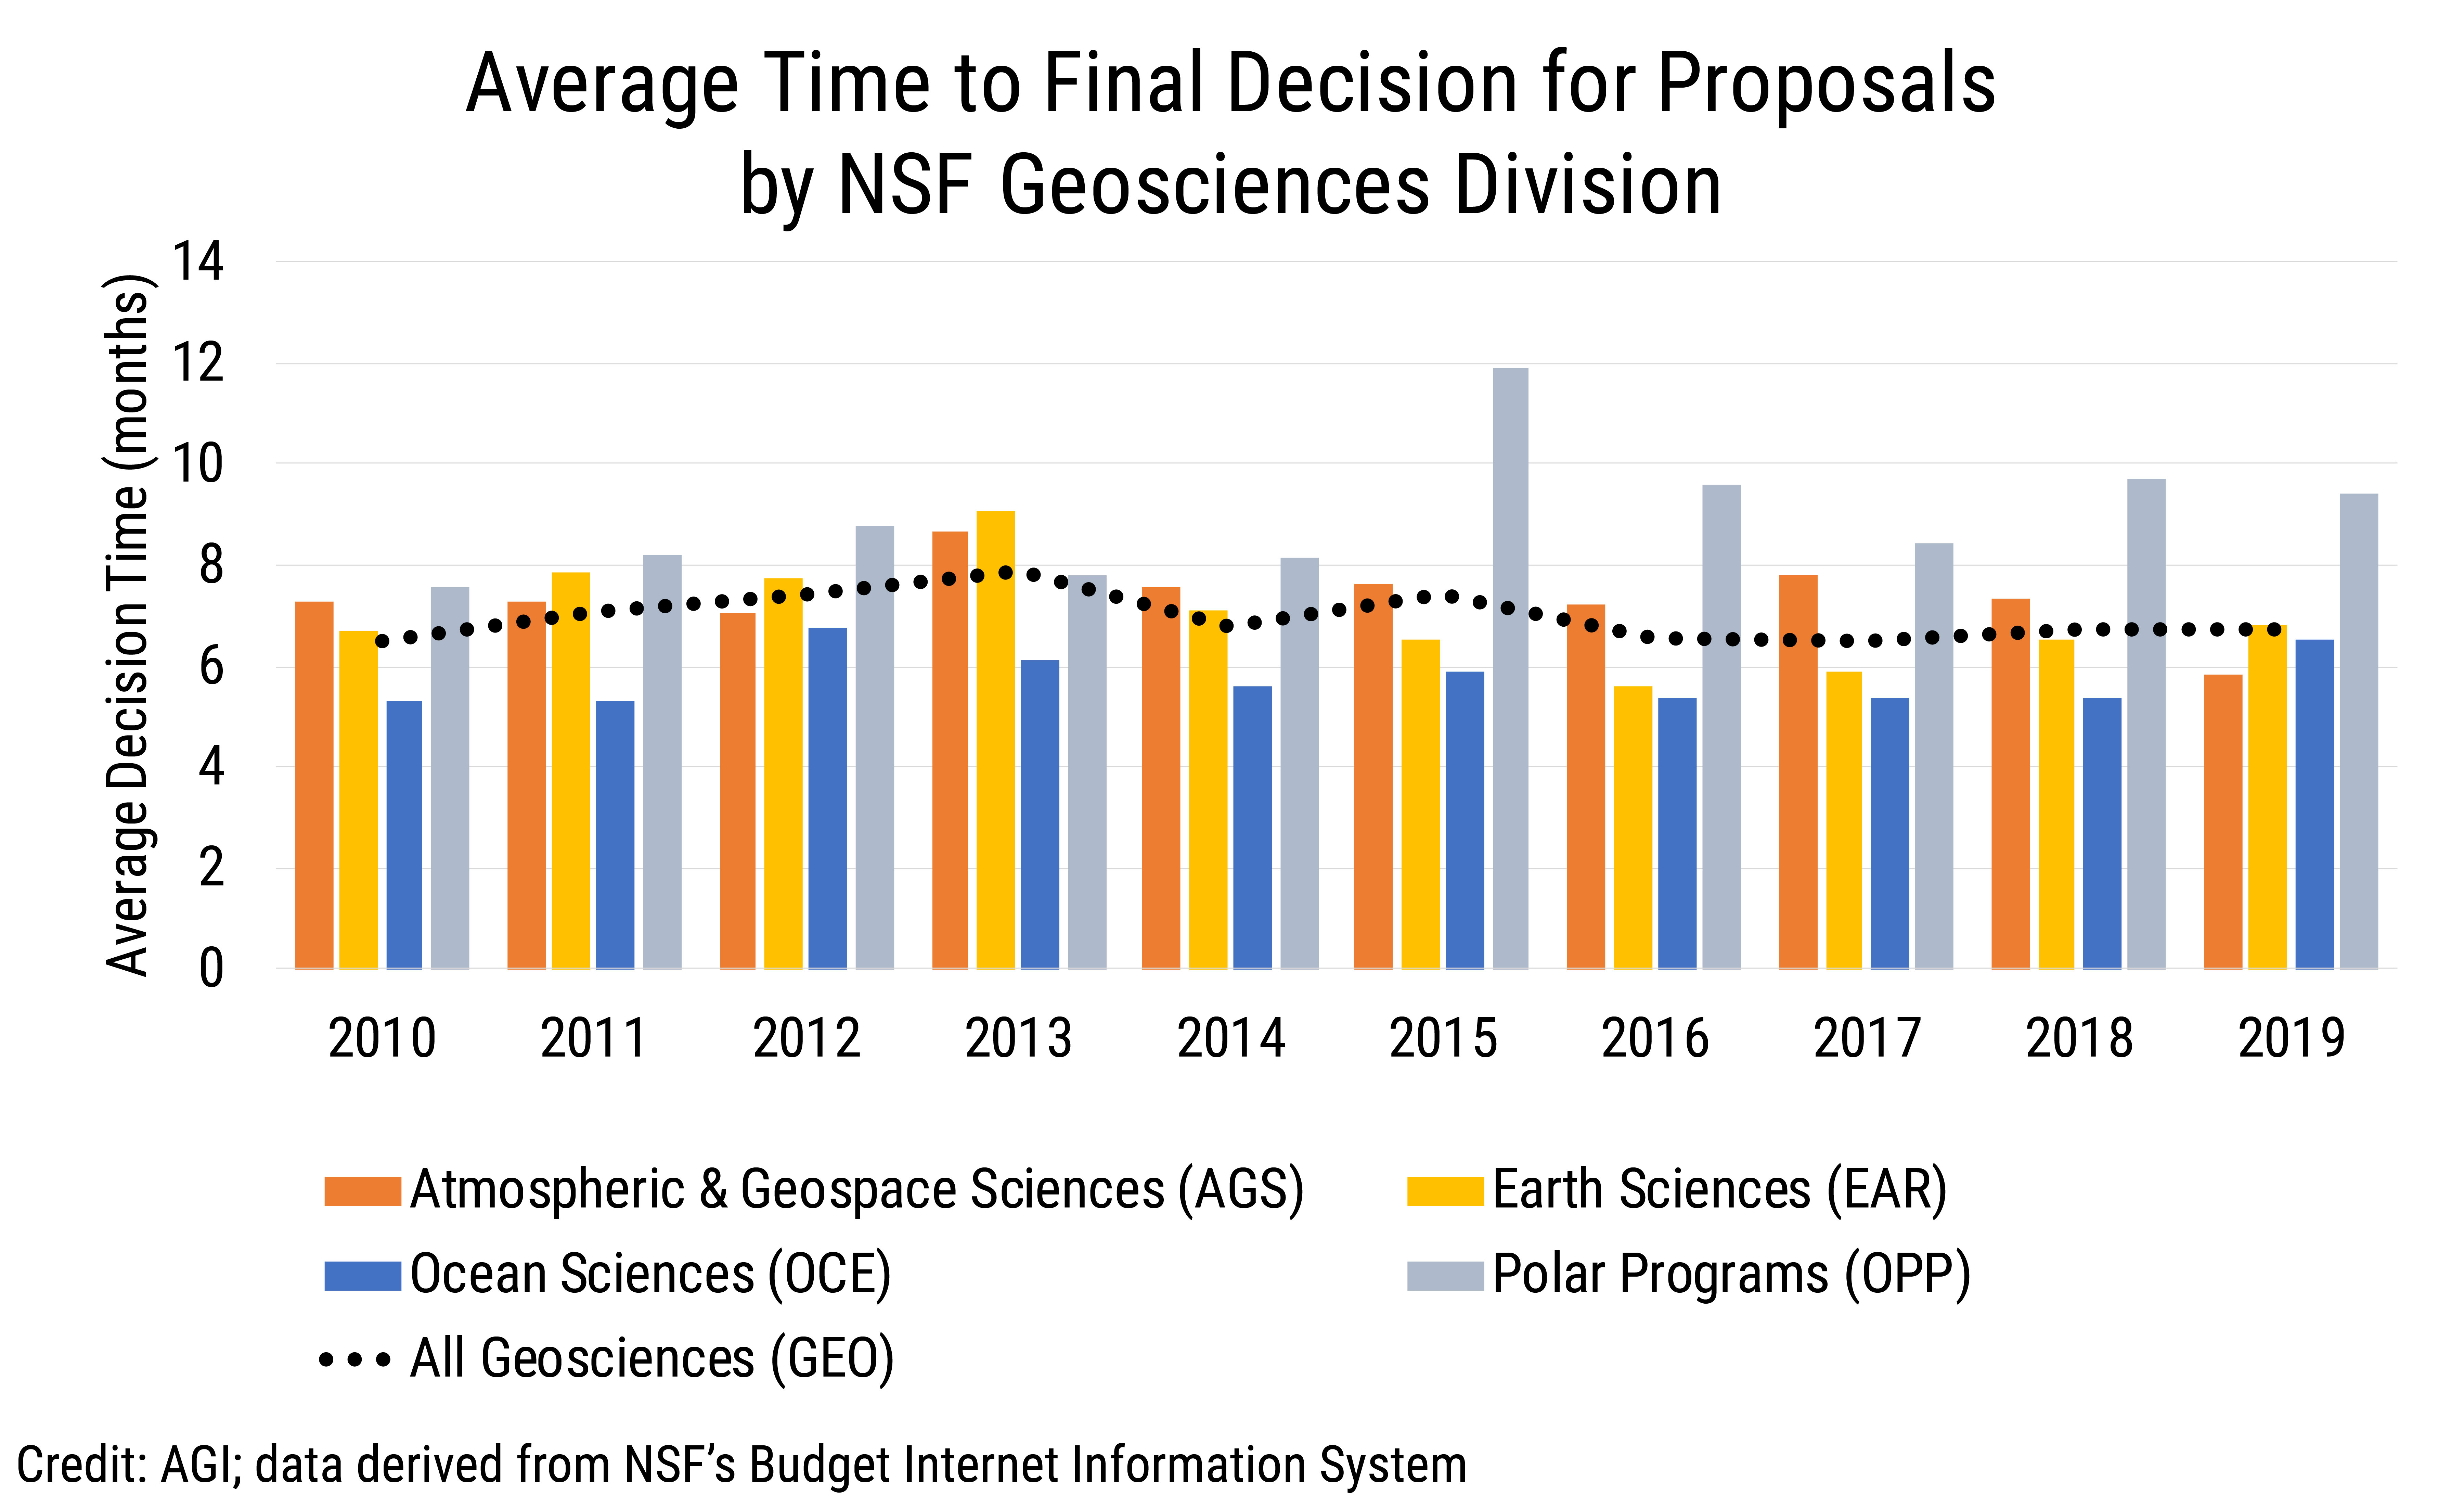 Data Brief 2019-016 chart 03: Average Time to Final Decision for Proposals by NSF Geosciences Division (credit: AGI; data derived from NSF BIIS)